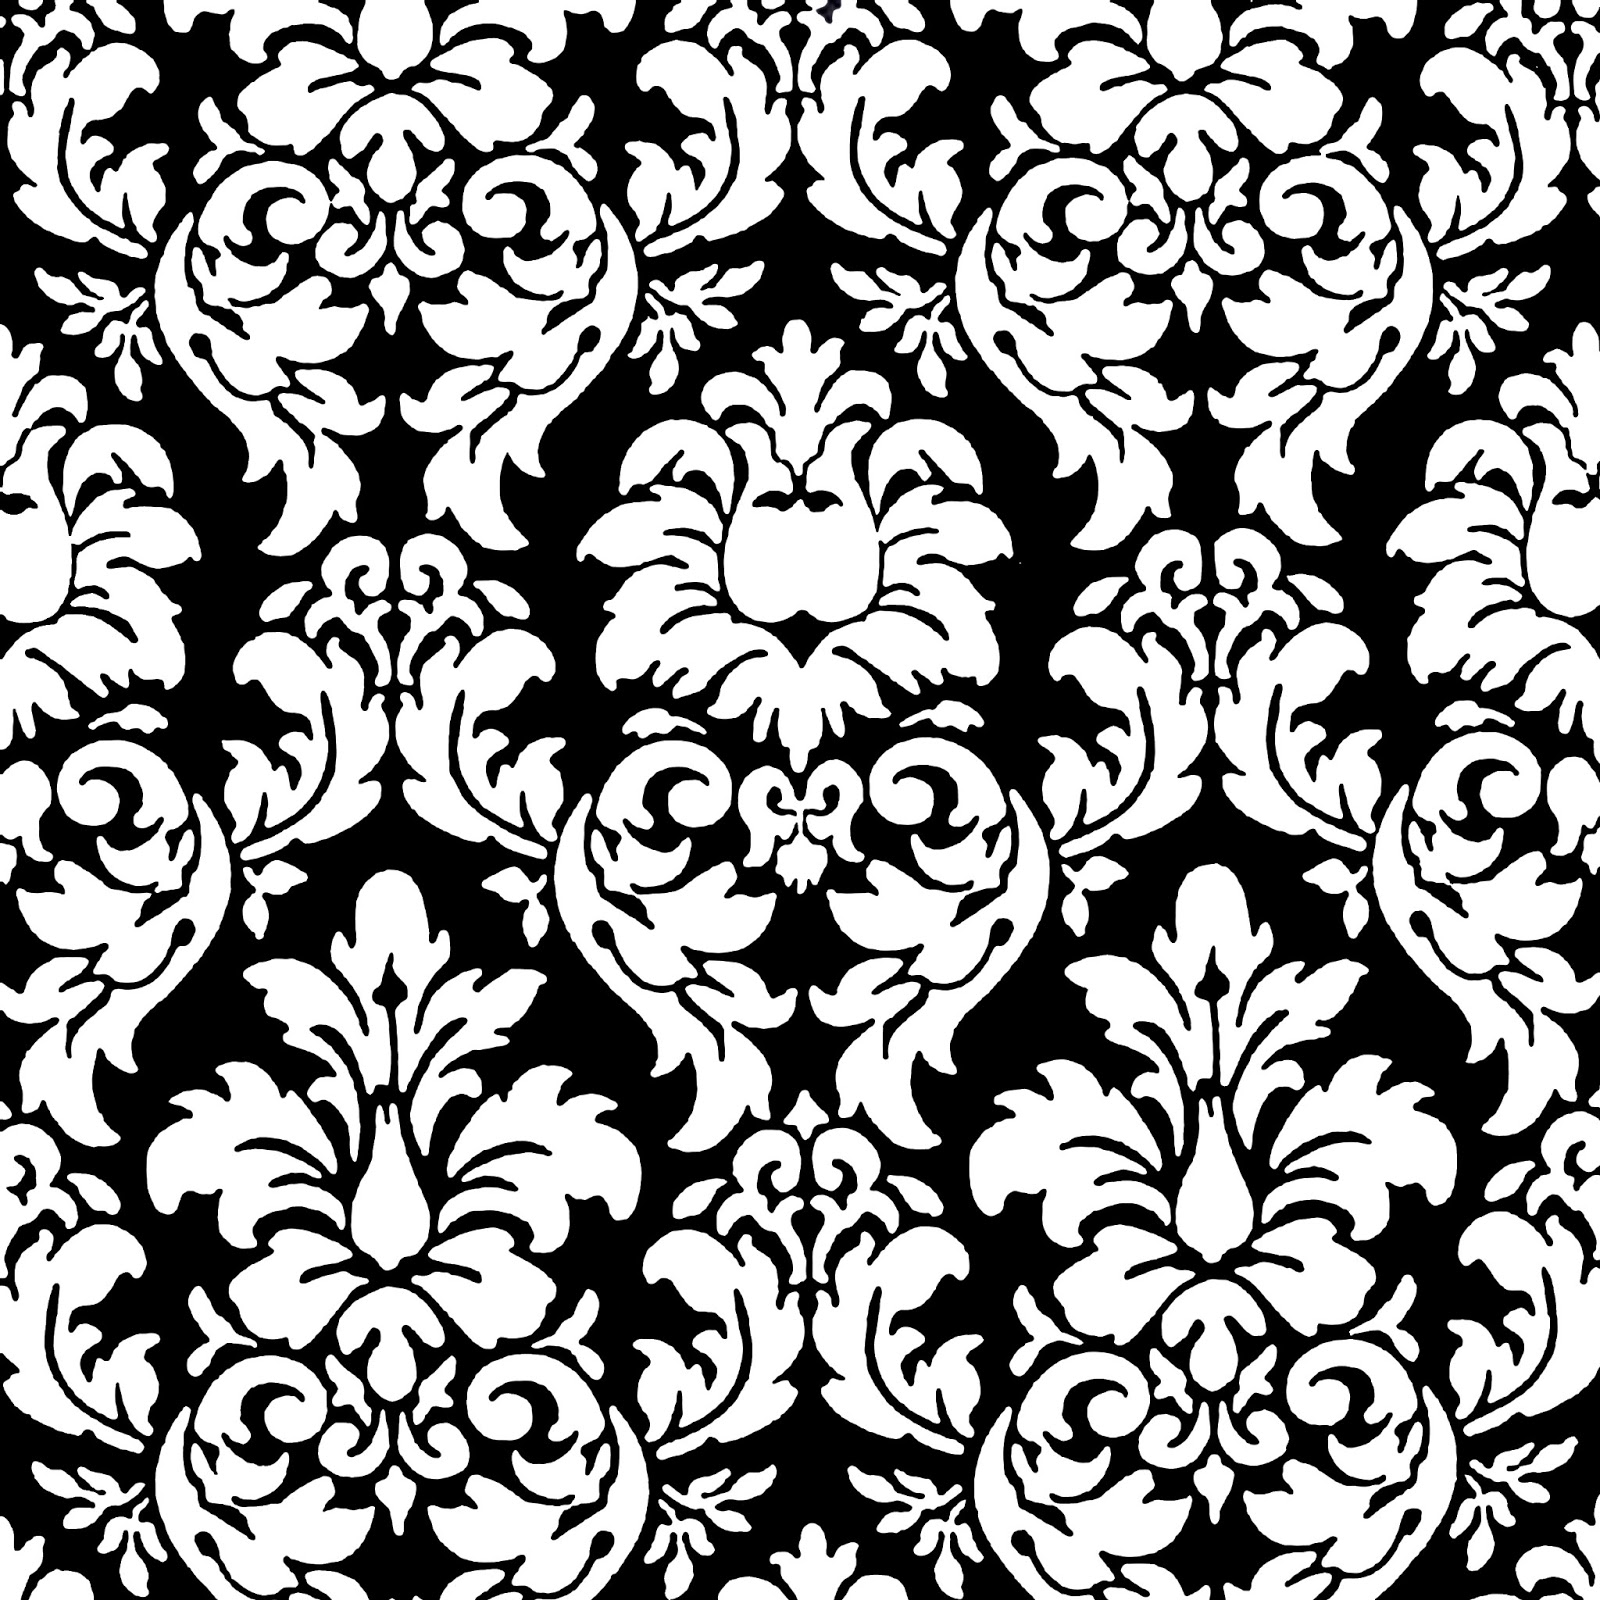 Black on black damask wallpaper for Black white damask wallpaper mural